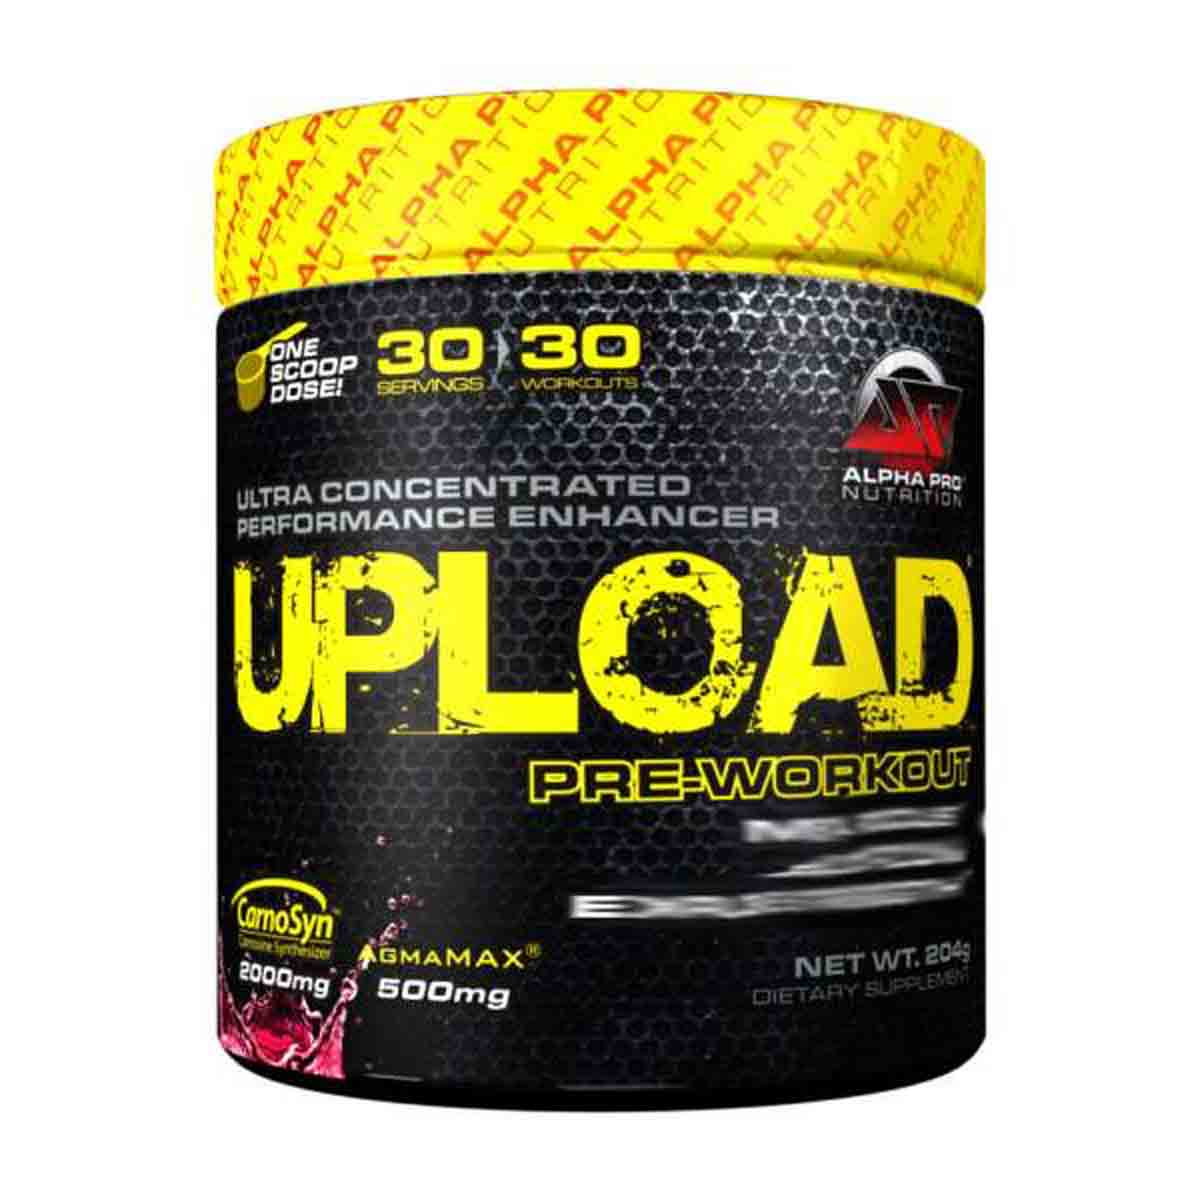 Alpha Pro Nutrition Upload